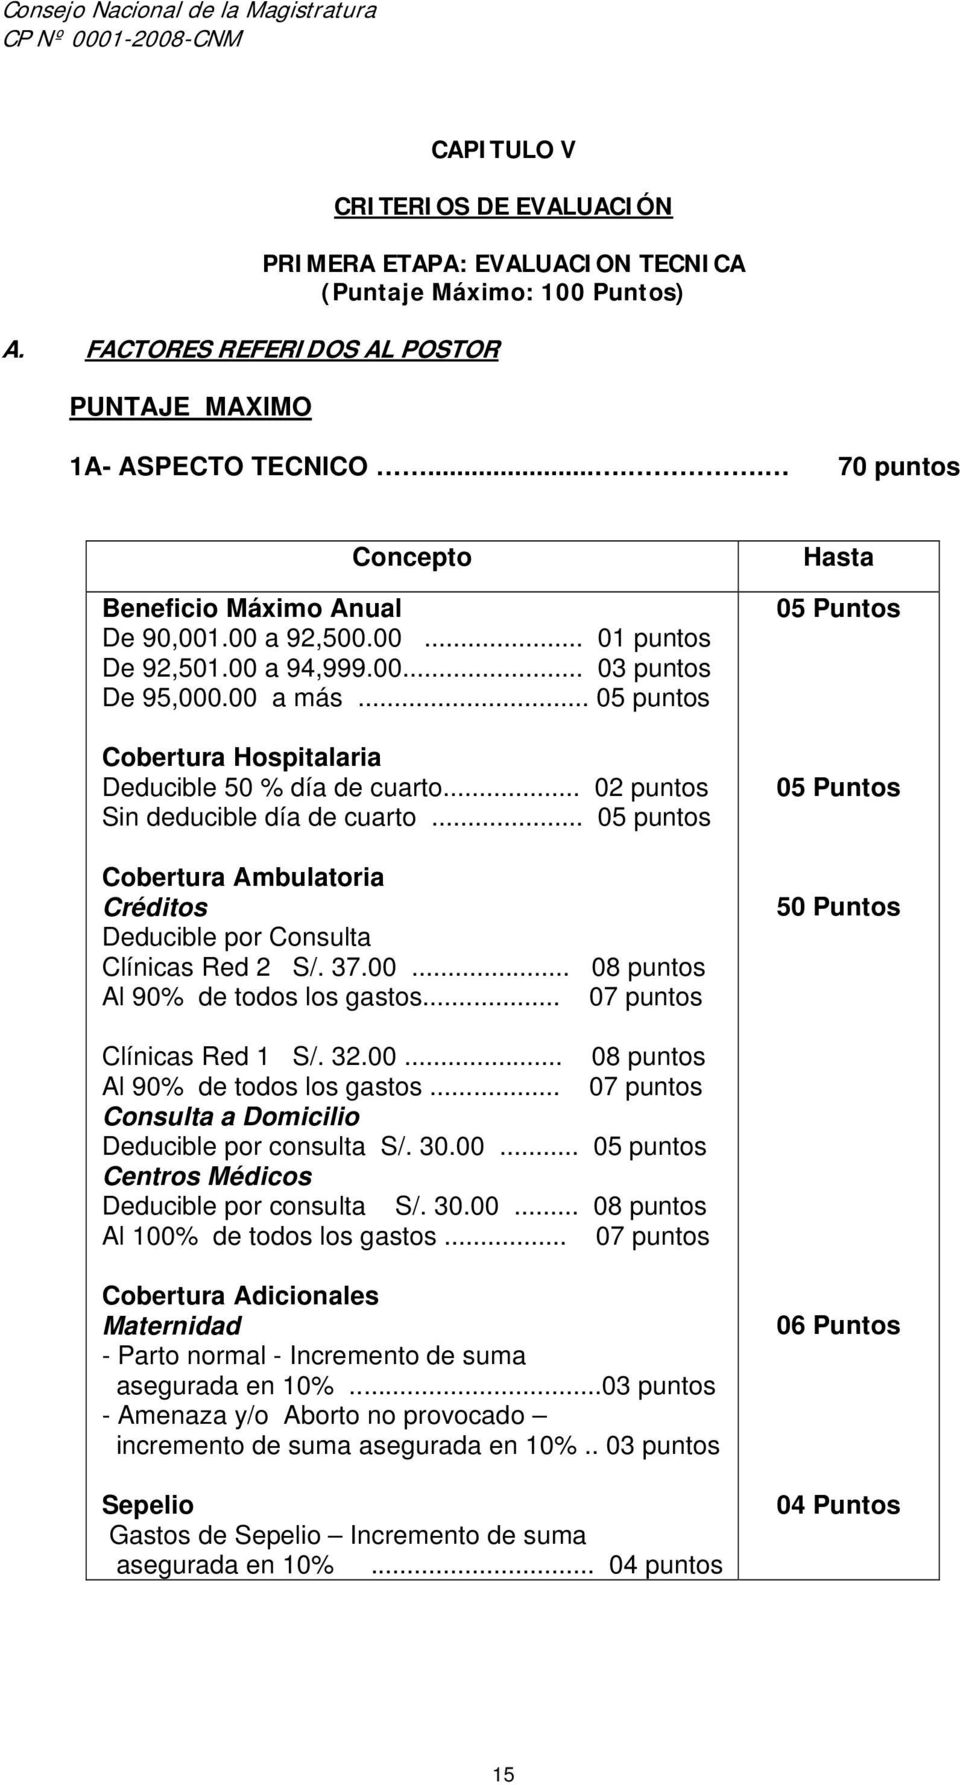 .. 05 puntos Cobertura Hospitalaria Deducible 50 % día de cuarto... 02 puntos Sin deducible día de cuarto... 05 puntos Cobertura Ambulatoria Créditos Deducible por Consulta Clínicas Red 2 S/. 37.00.